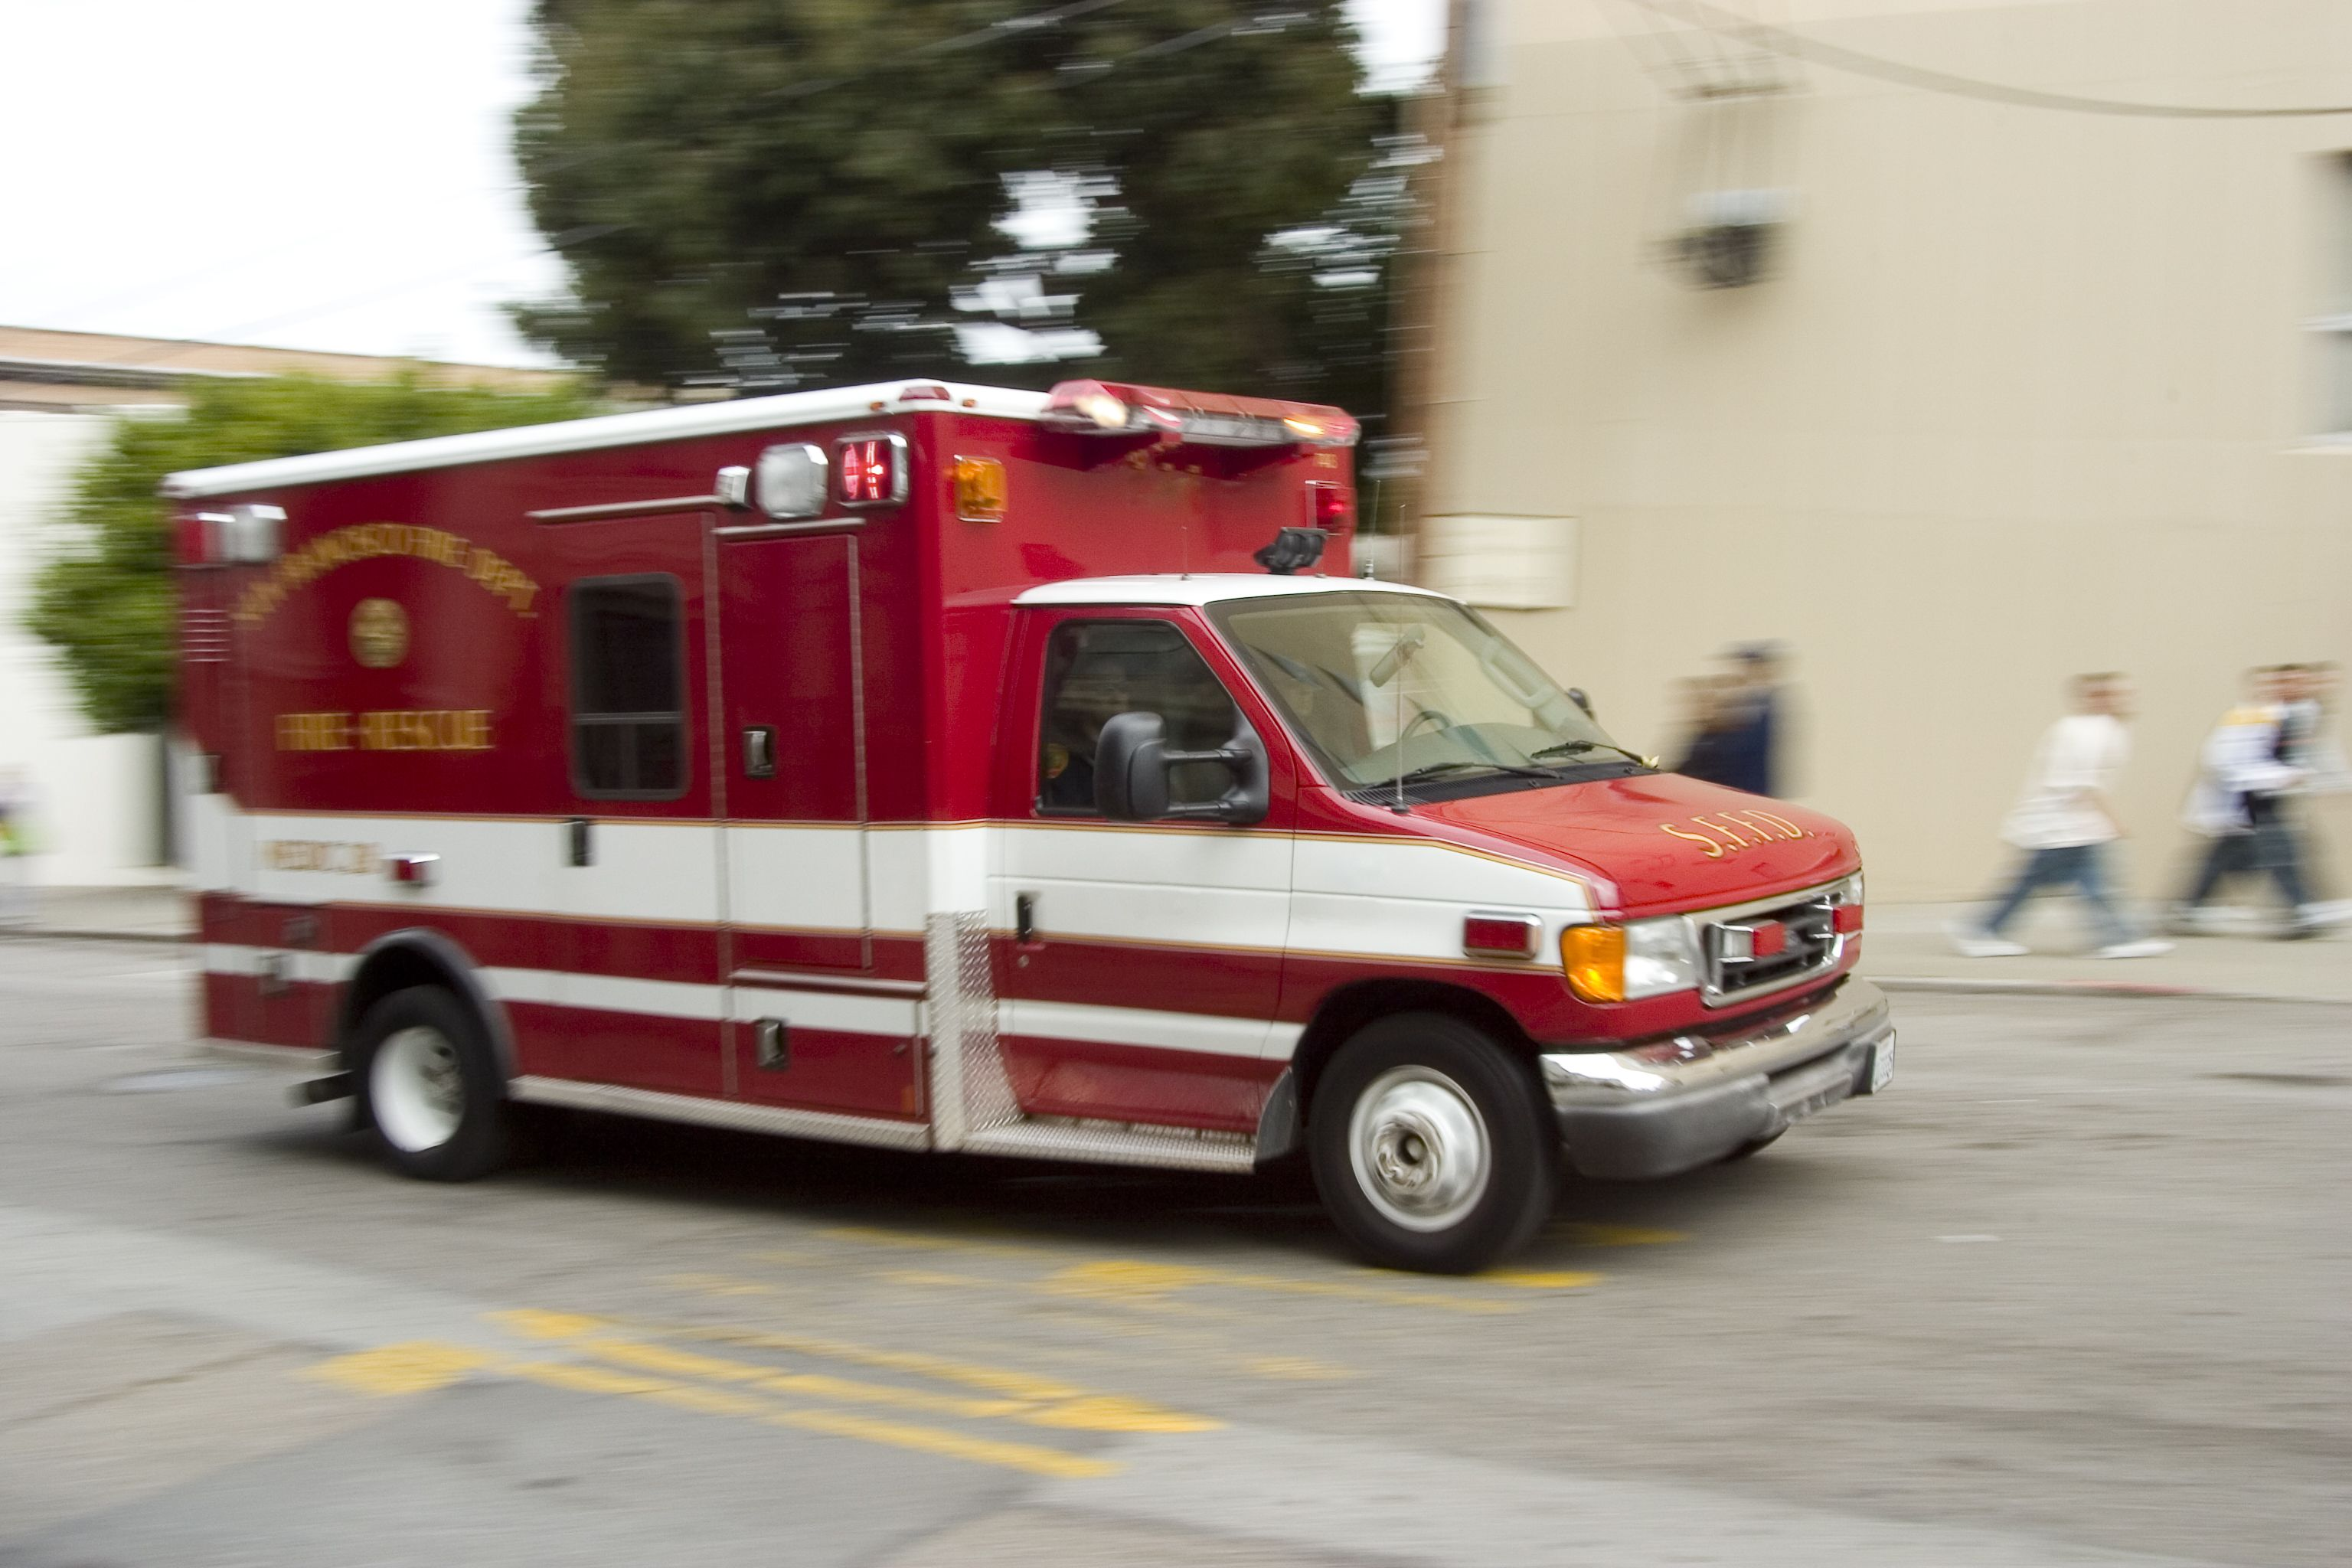 An ambulance, rushing to the scene of an accident